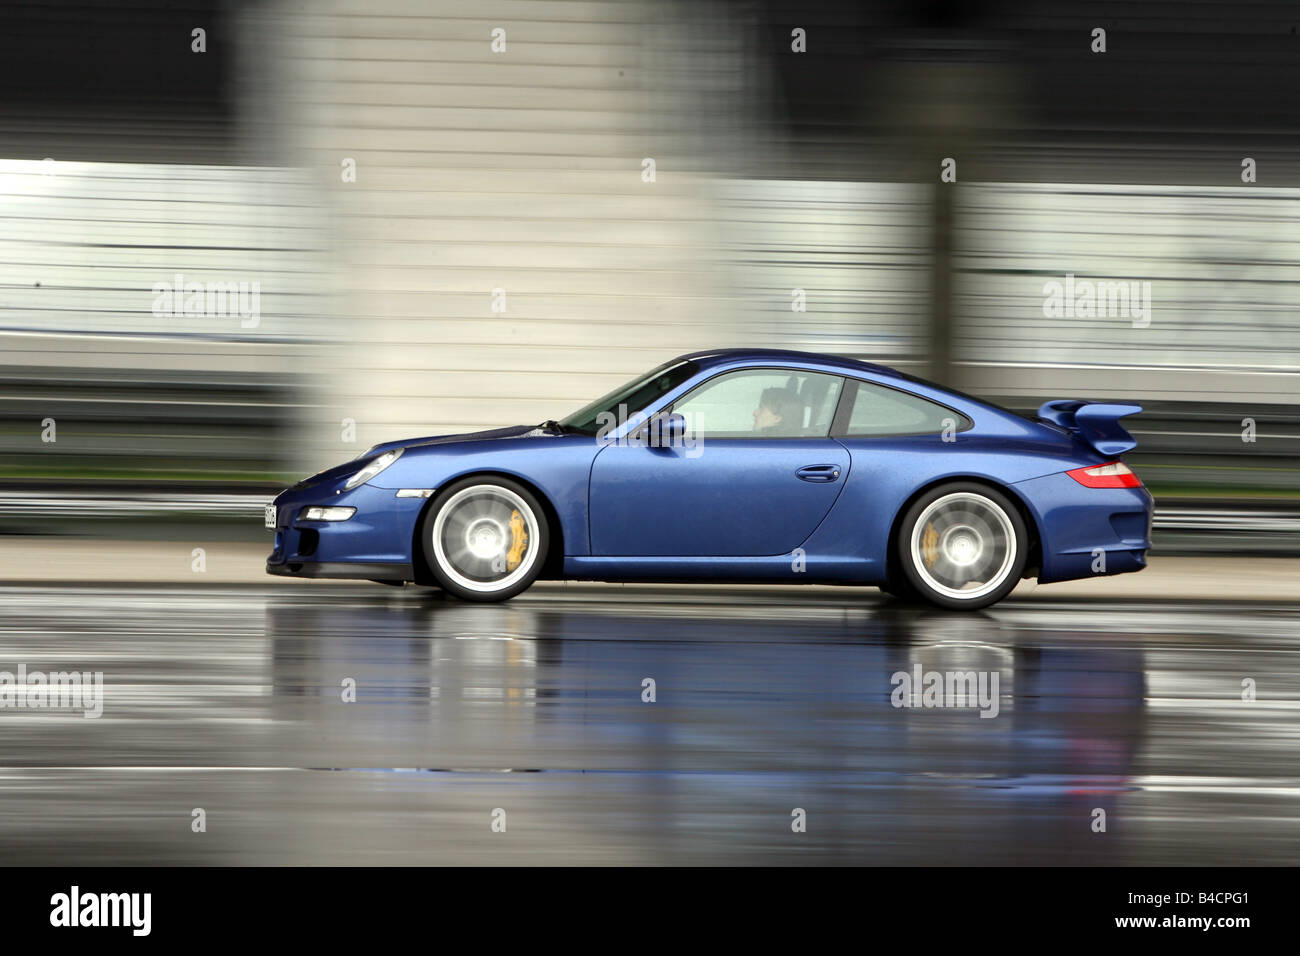 Porsche 911 GT3, model year 2006-, blue moving, side view, Test track - Stock Image